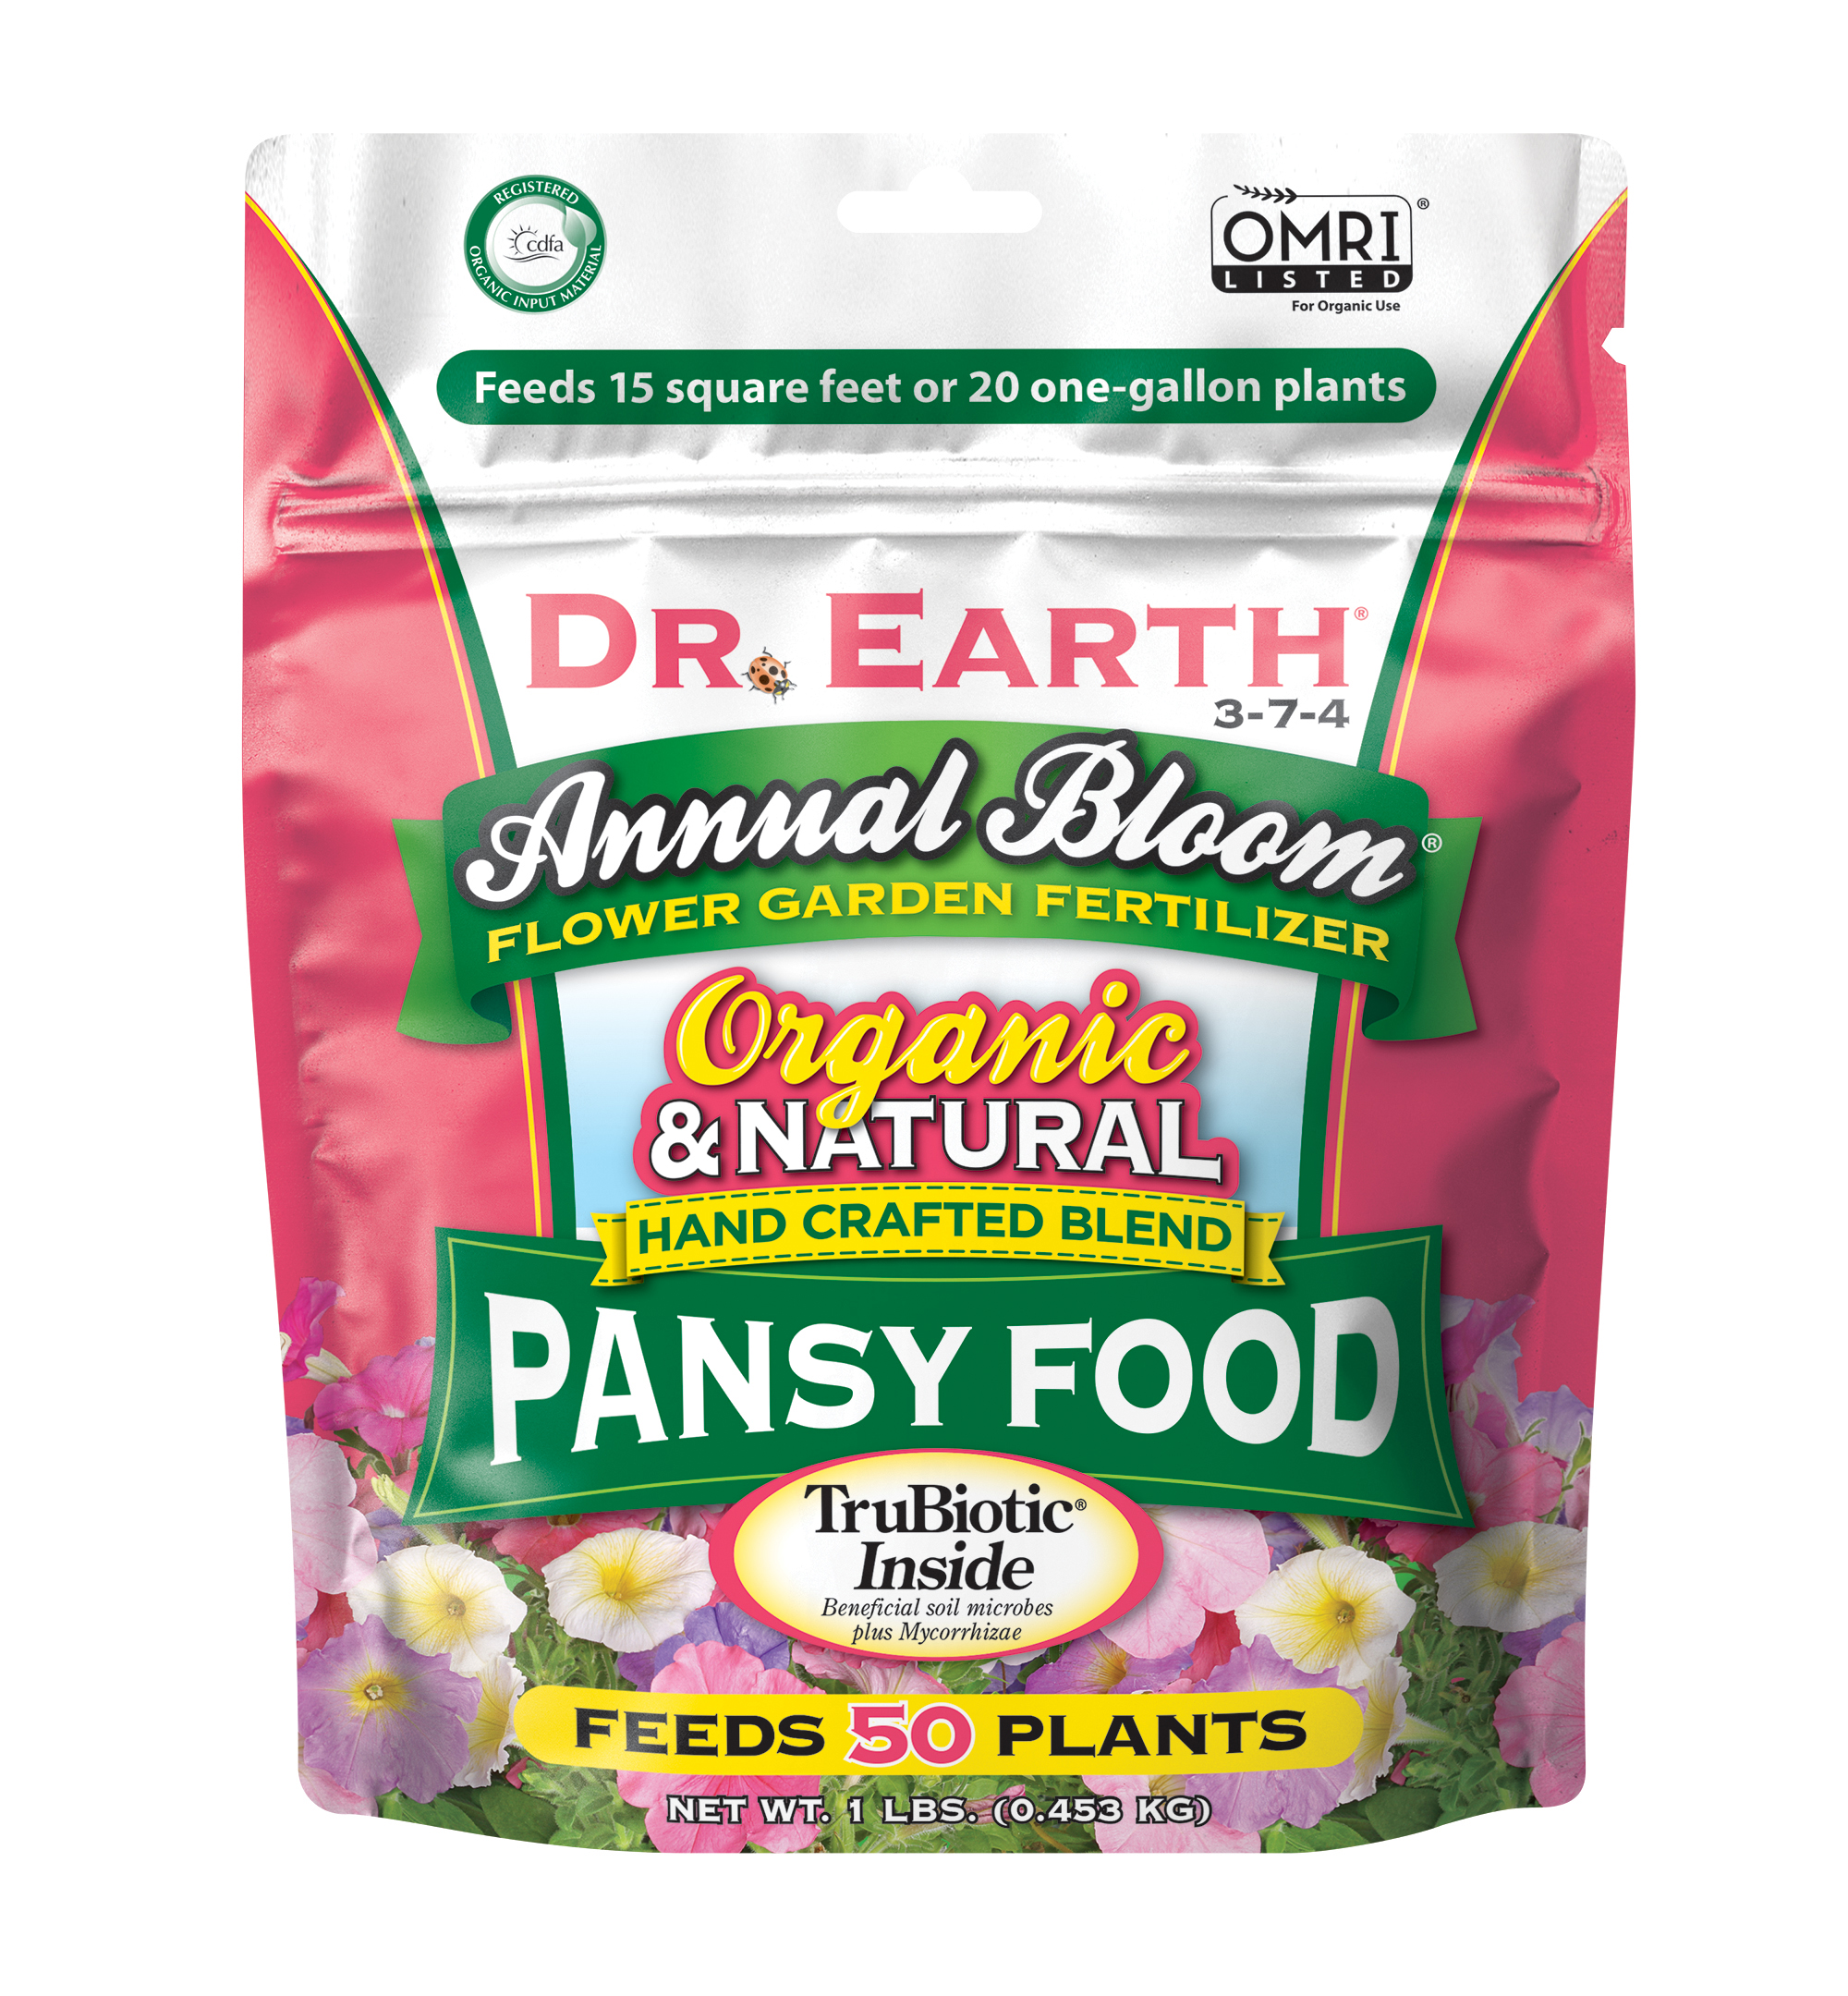 ANNUAL BLOOM FLOWER GARDEN PANSY FERTILIZER 1lb